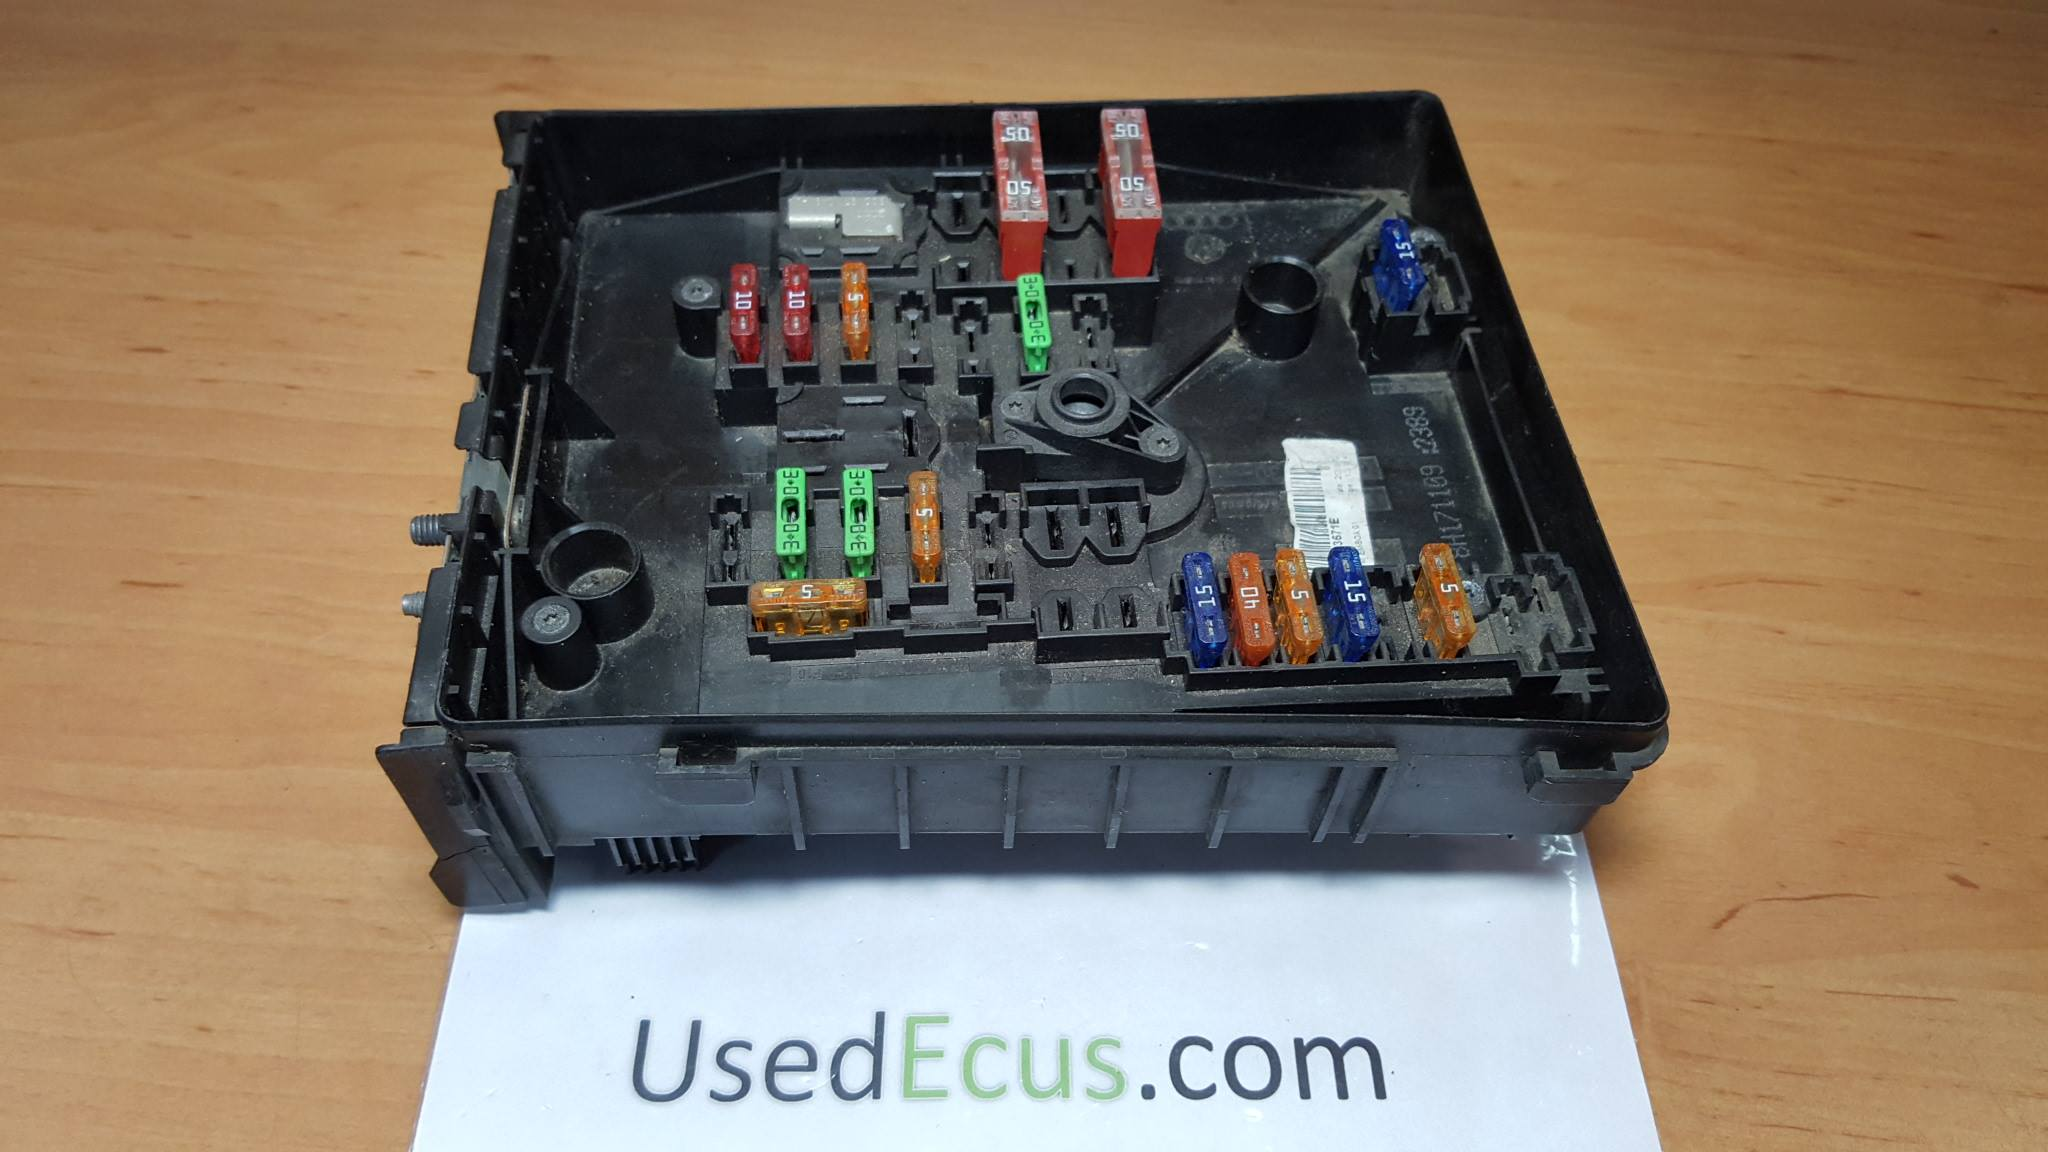 Audi A3 1 9 Tdi Fuse Box Best Wiring Library Nissan Cube Location Skoda Octavia 2010 19 1k0937125d Article